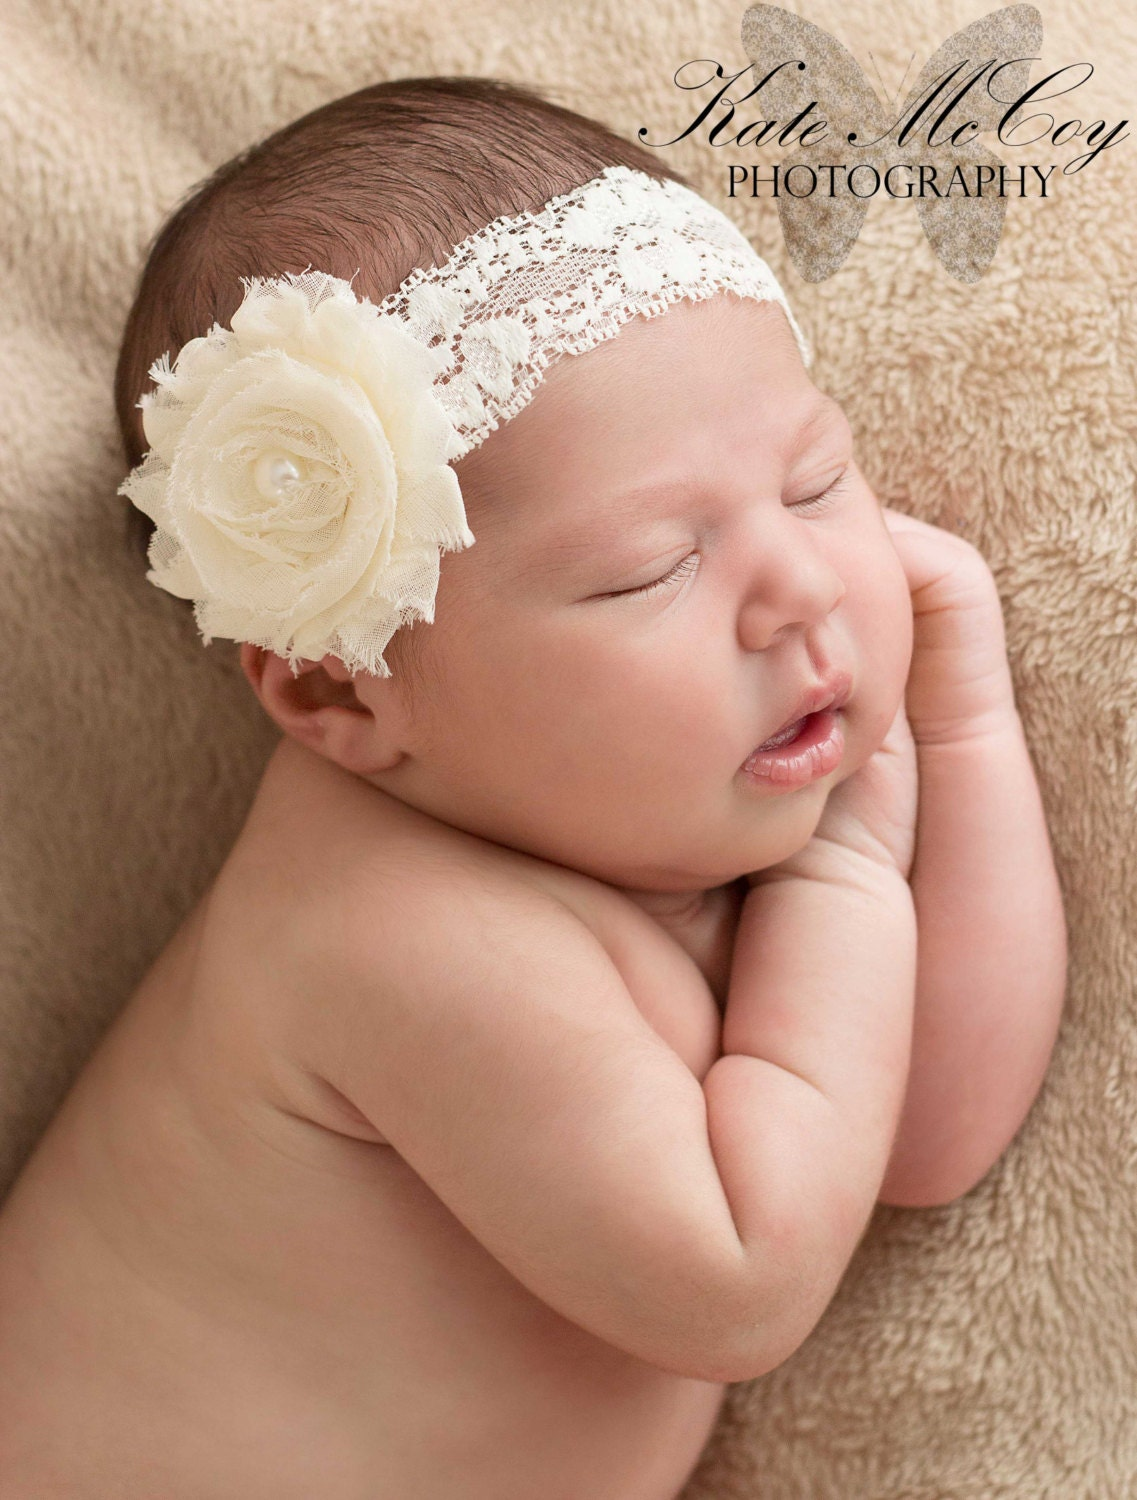 Girl's & Baby Headbands. Headbands are a fun addition to any girl's outfit. Add some flair, mix and match colors, and bring some extra cheer to your girl's wardrobe.